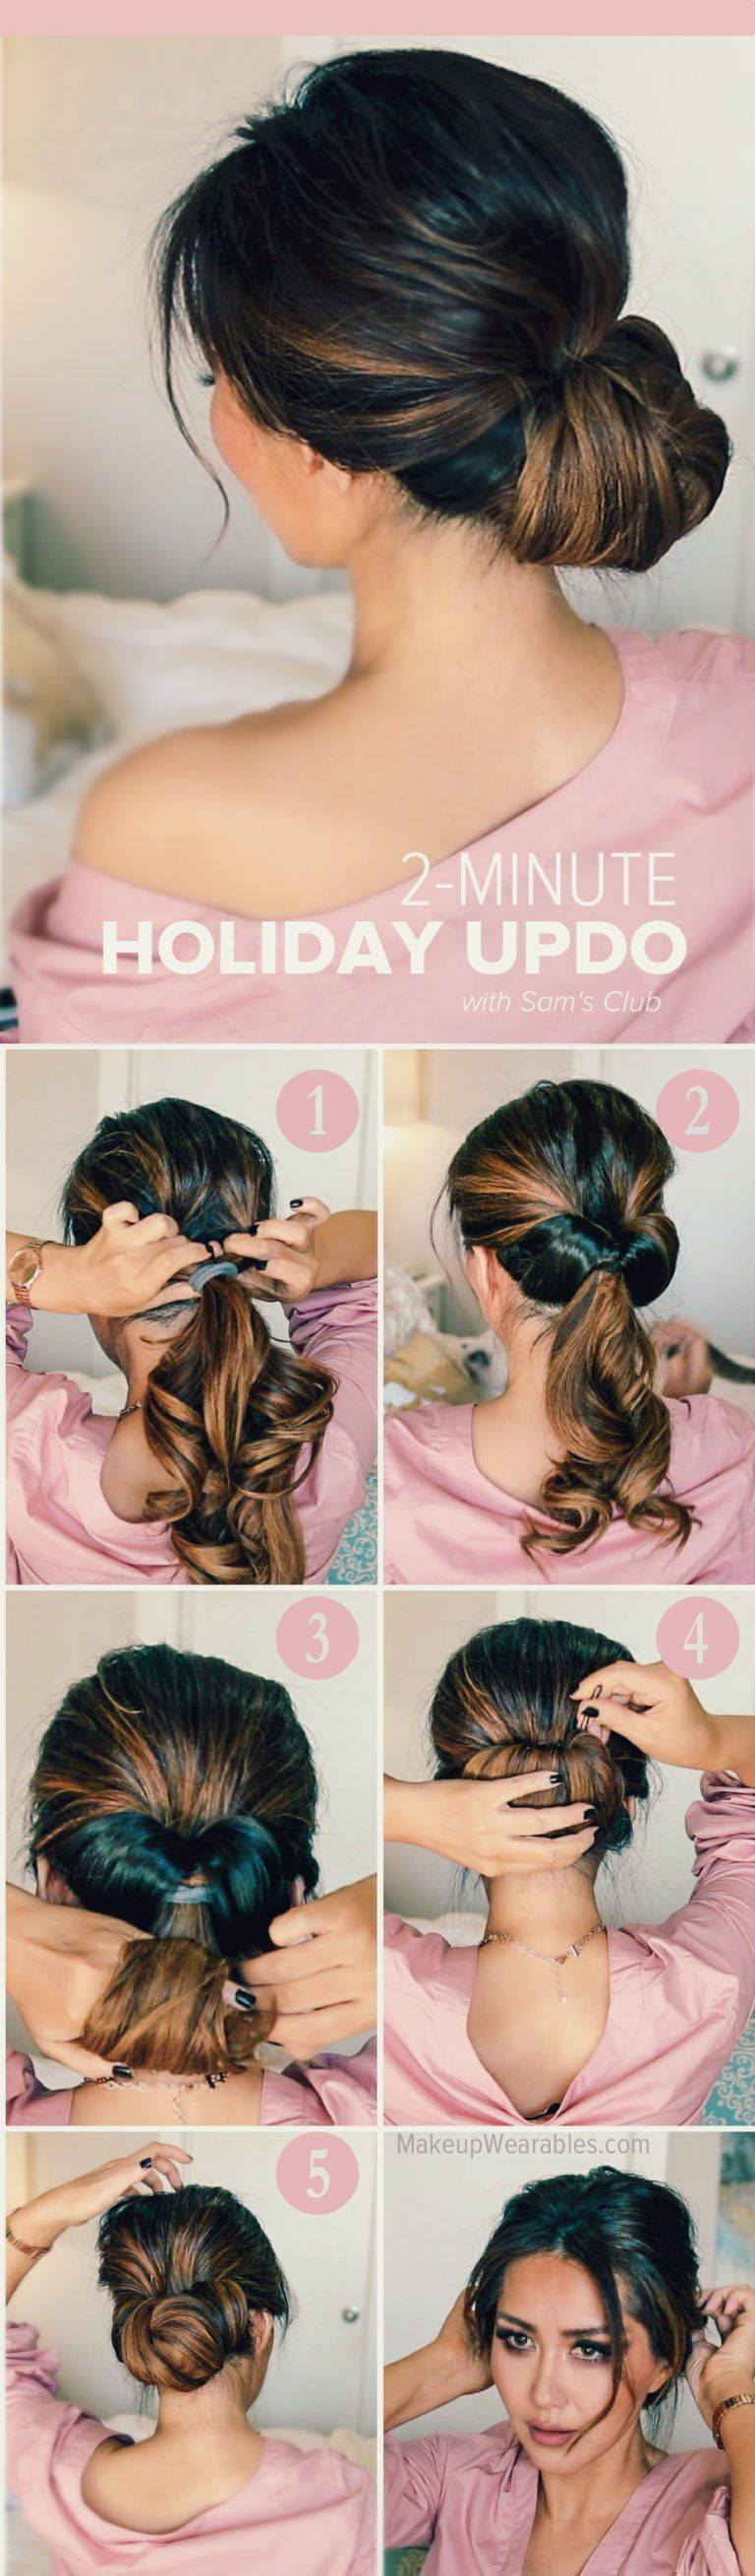 fiveminute hairstyles to help you look polished anytime hair